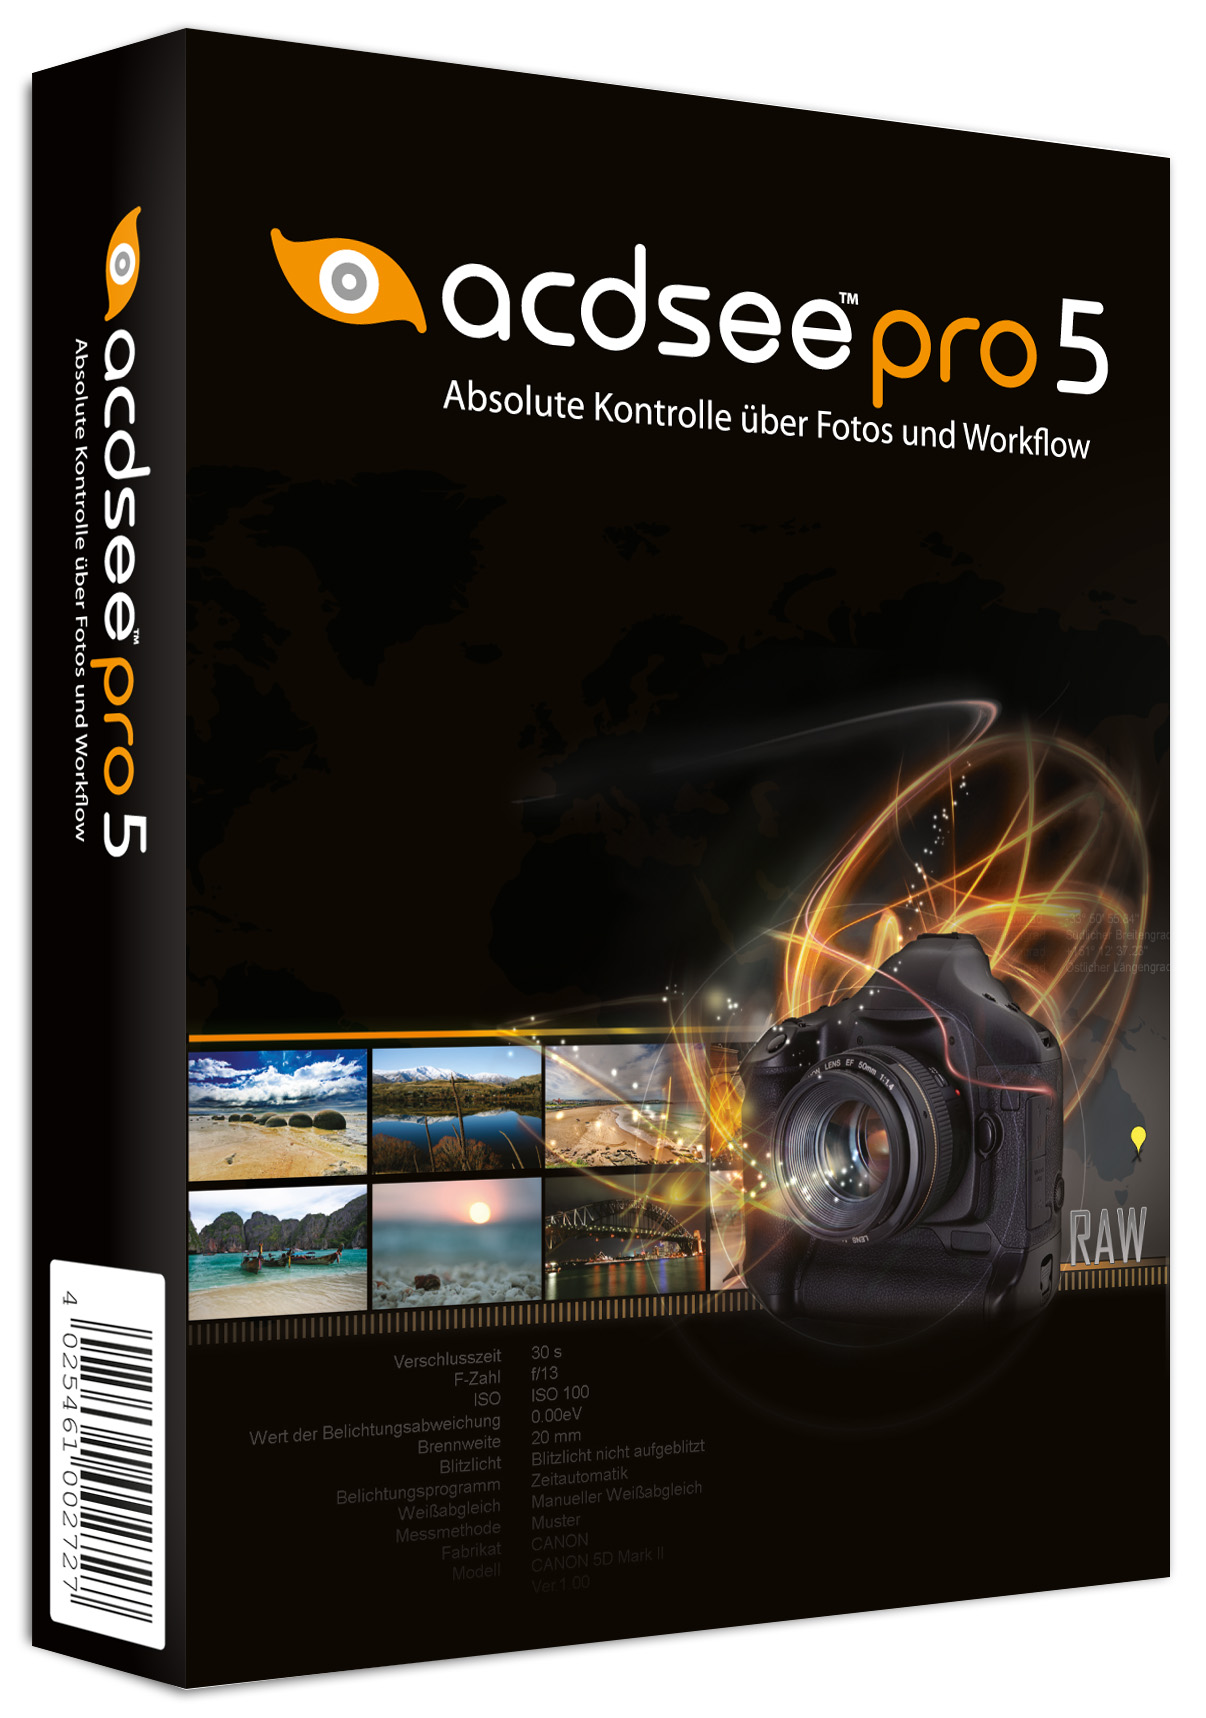 Скачать ACDSee Pro 5.2 Build 157 Final (RUS ENG) бесплатно.